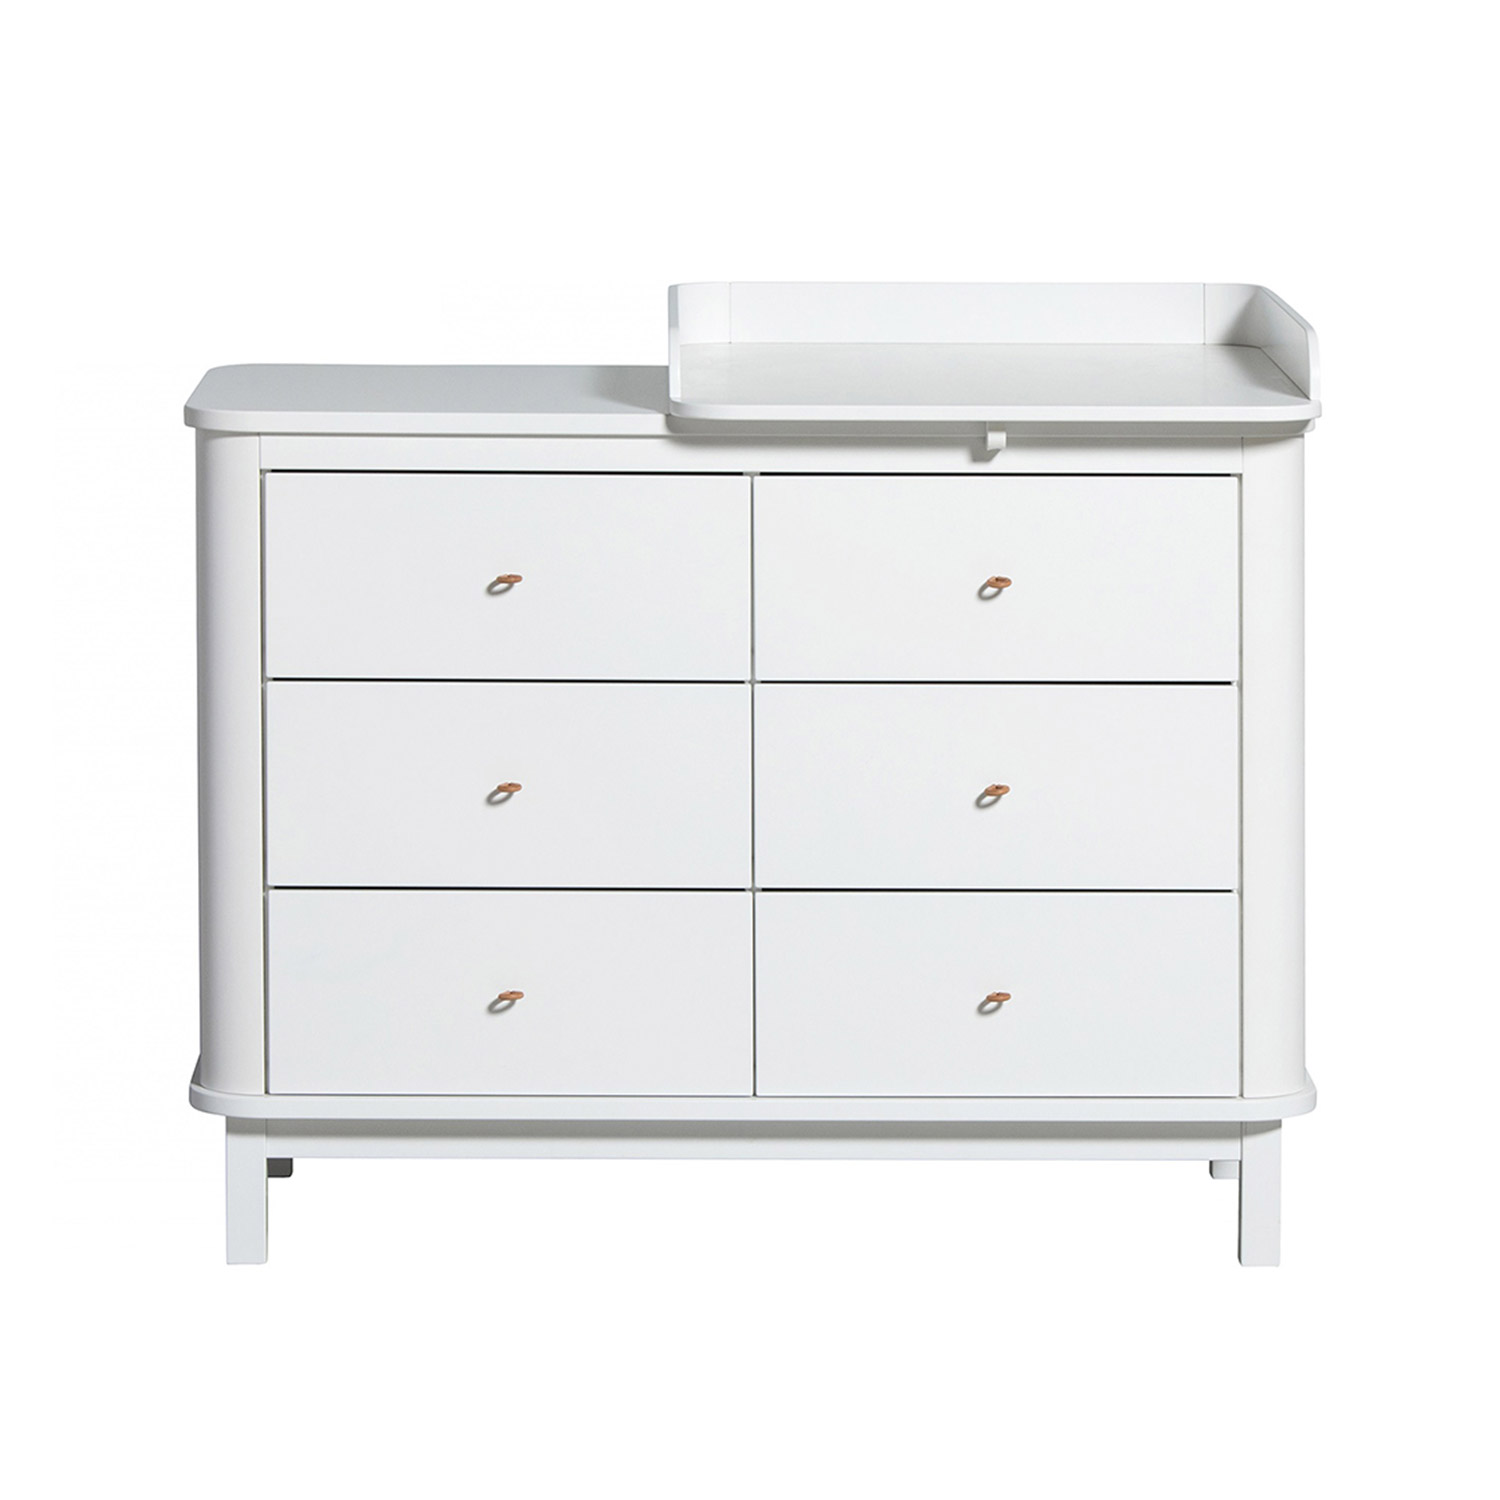 Oliver Furniture Wood Kommode 6 Schubladen Weiss Wickelplatte